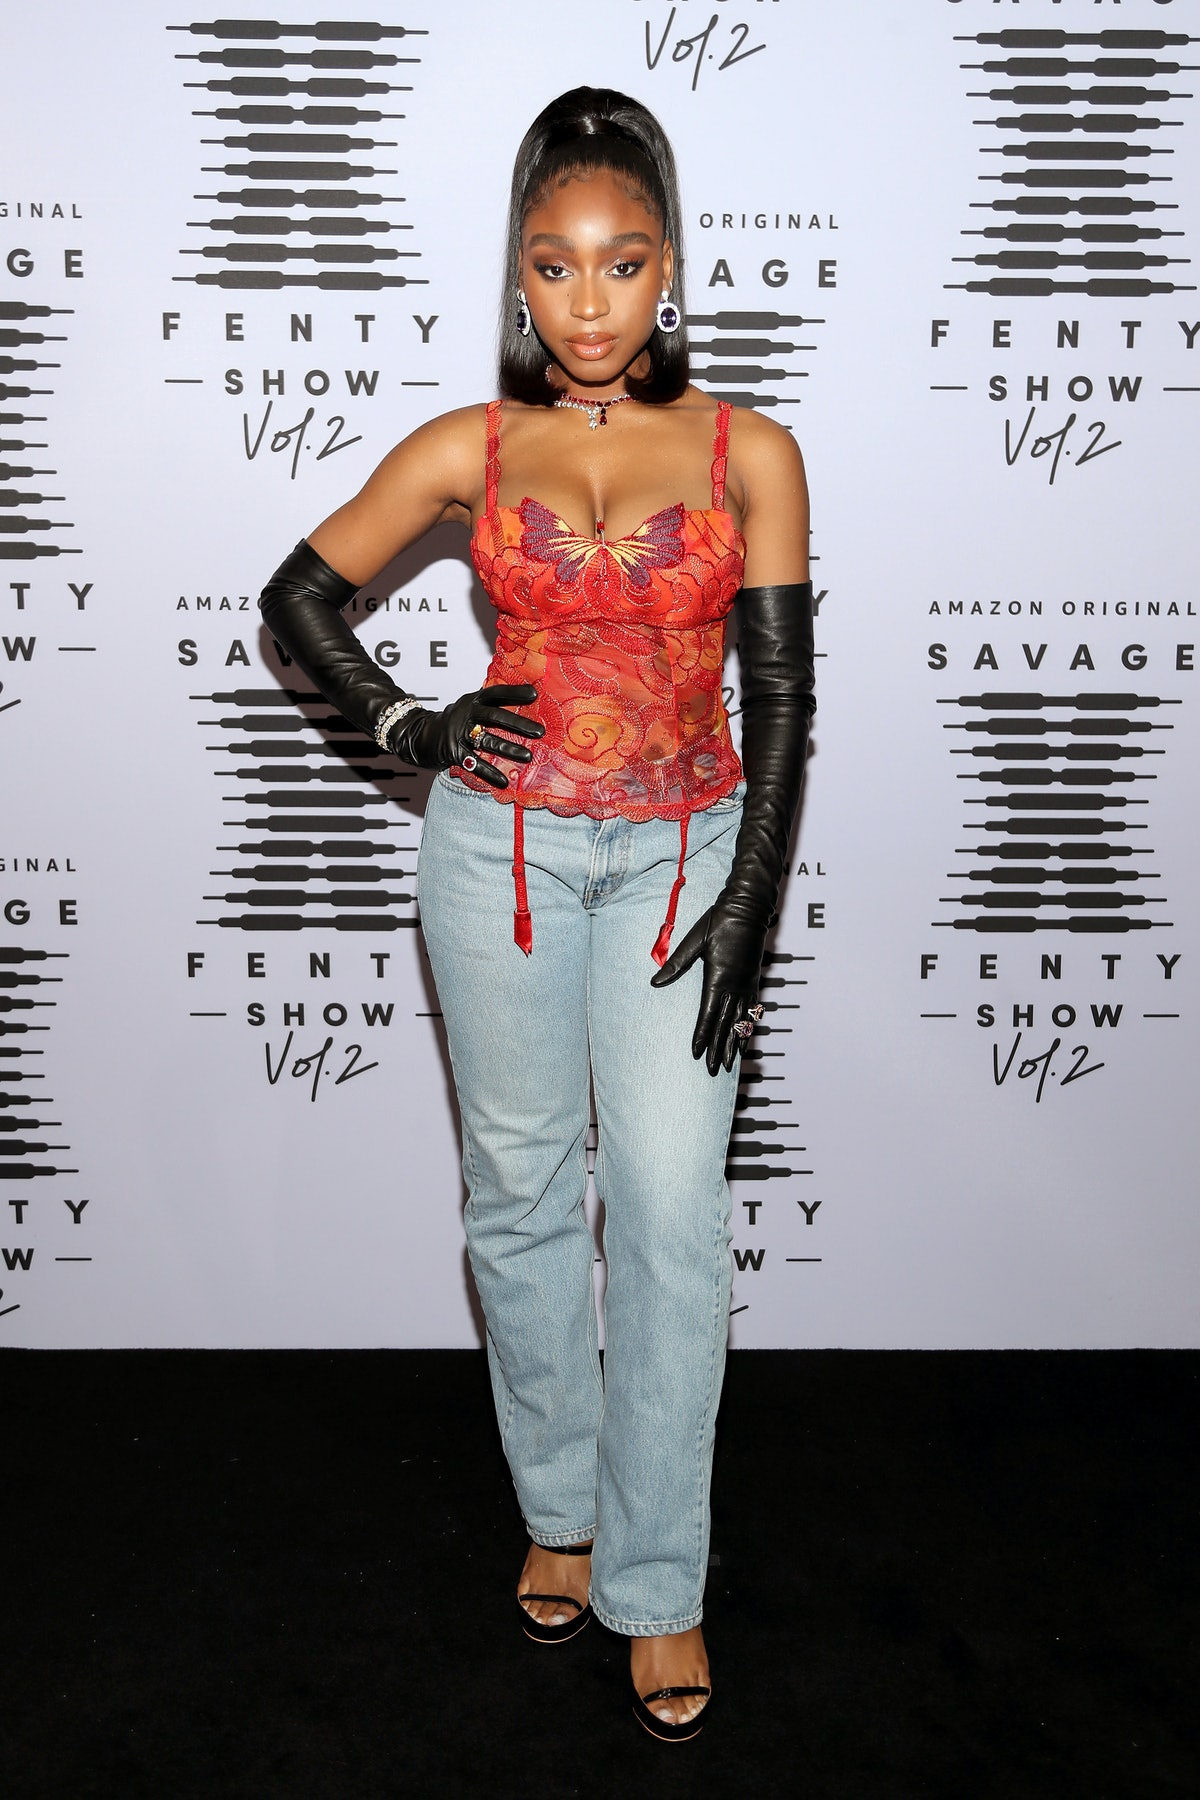 LOS ANGELES, CALIFORNIA - OCTOBER 1: (EDITORS NOTE: This image has been retouched) In this image released on October 1, Normani attends Rihanna's Savage X Fenty Show Vol. 2 presented by Amazon Prime Video at the Los Angeles Convention Center in Los Angeles, California; and broadcast on October 2, 2020. (Photo by Jerritt Clark/Getty Images for Savage X Fenty Show Vol. 2 Presented by Amazon Prime Video)